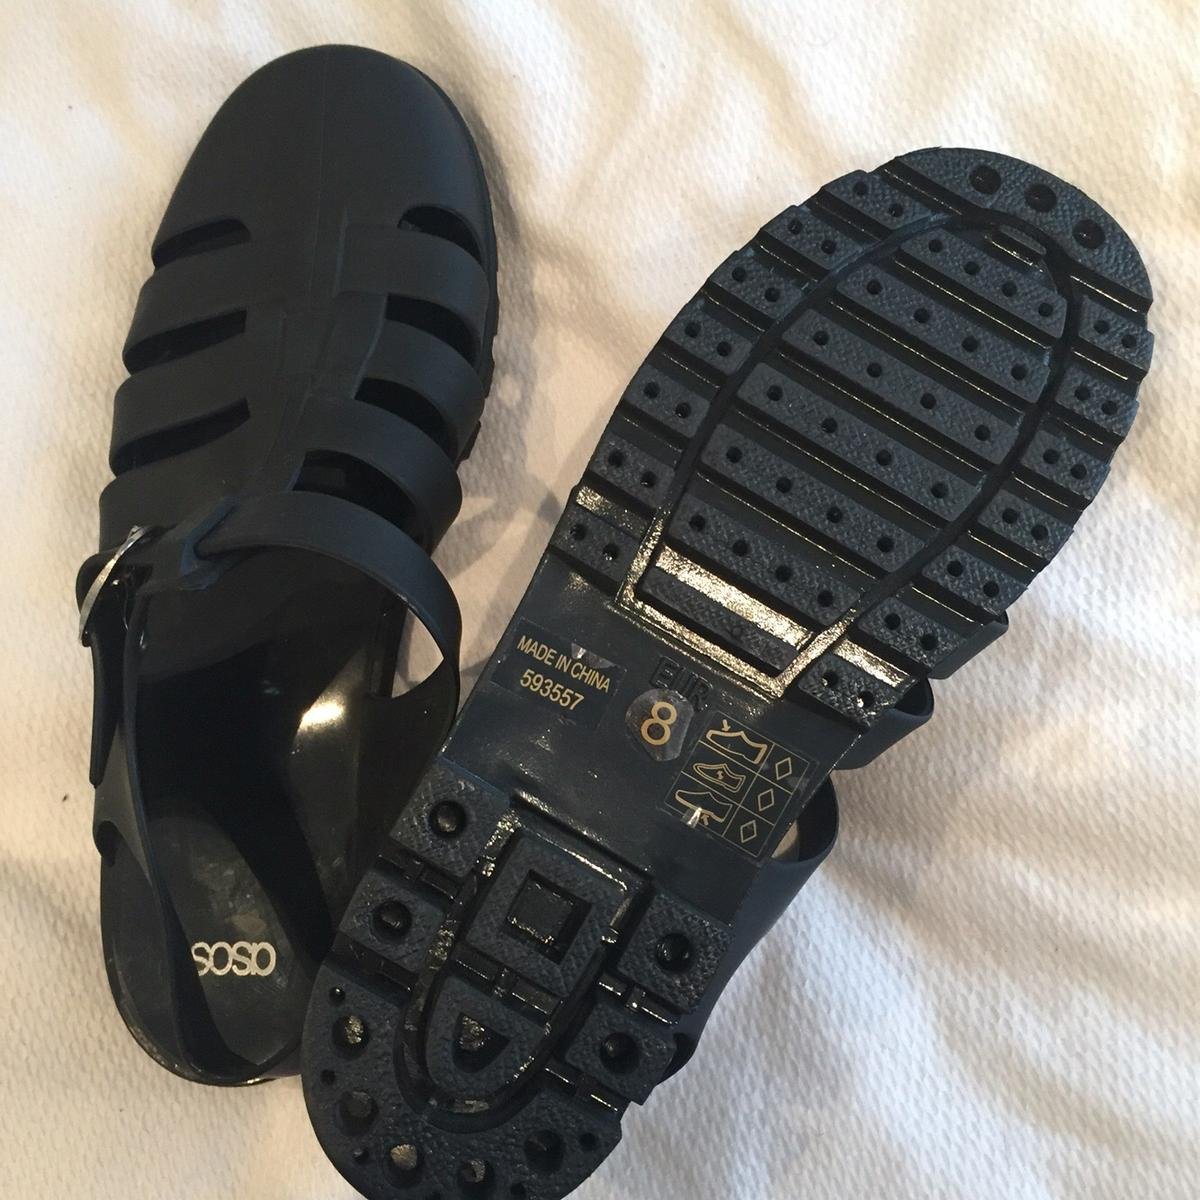 b6e7673287a ASOS matte black jelly sandals size 8 in TS17 Thornaby for £6.00 for sale -  Shpock